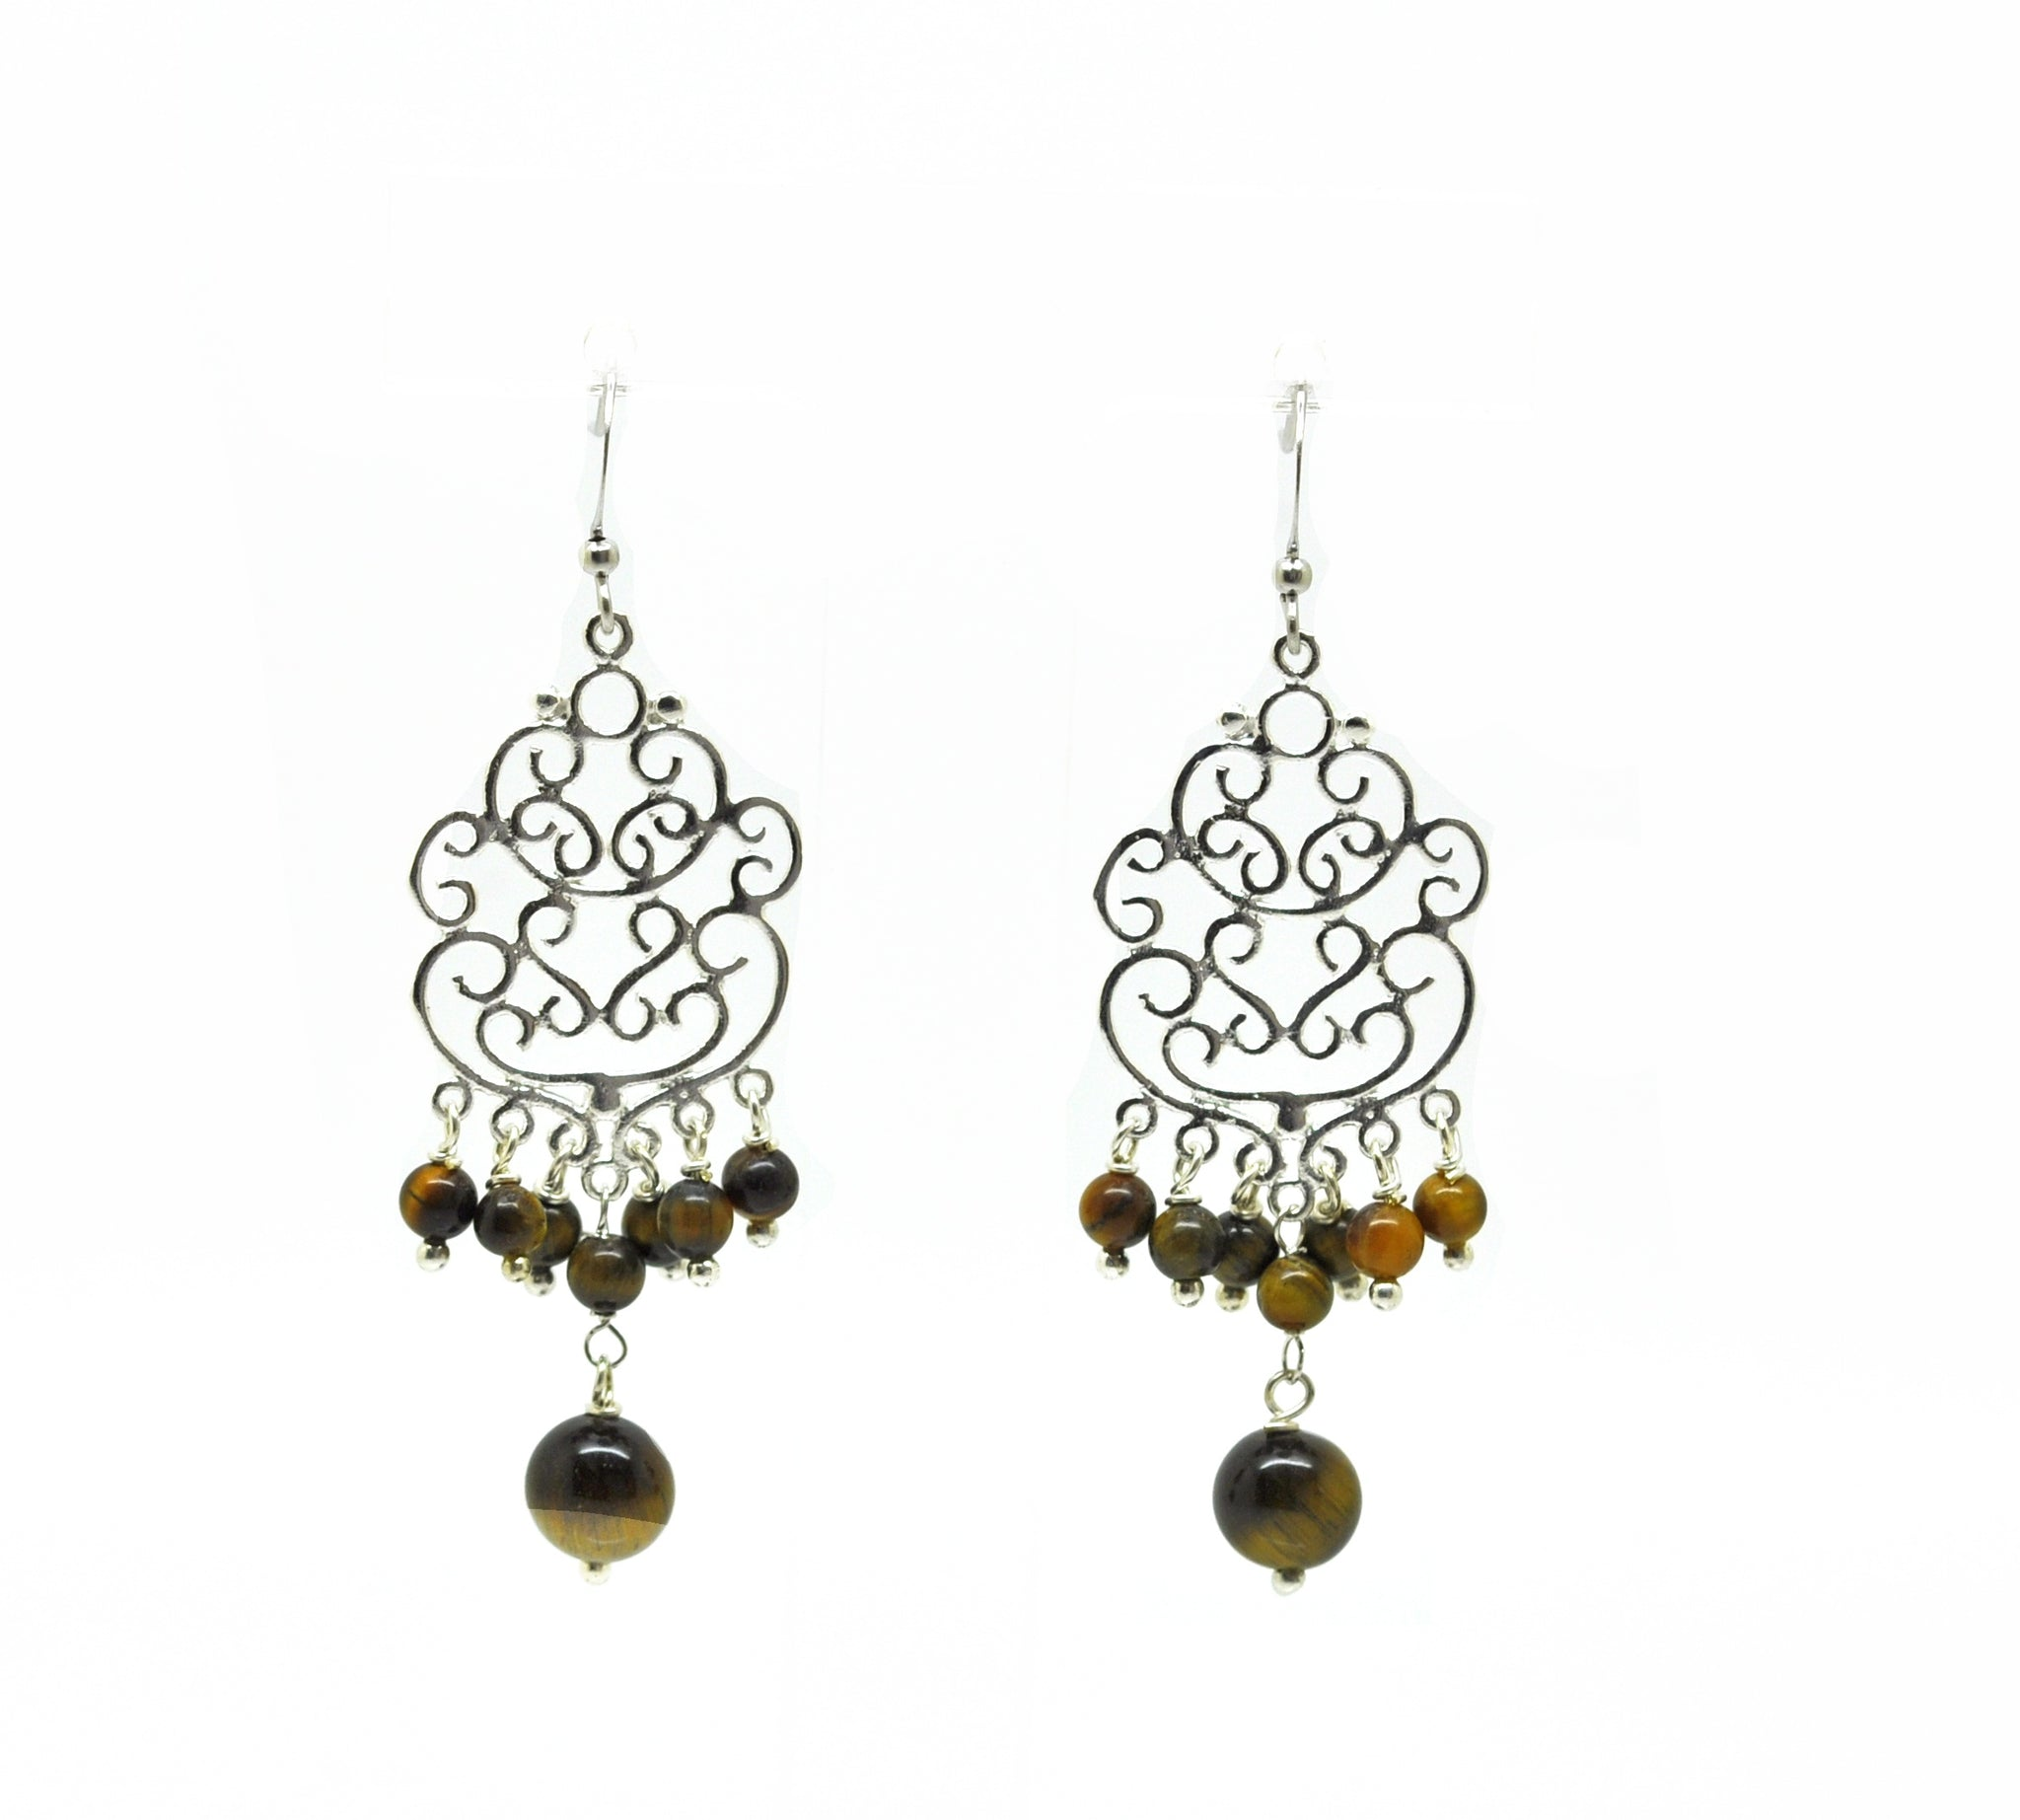 NEW Filigree drop earring